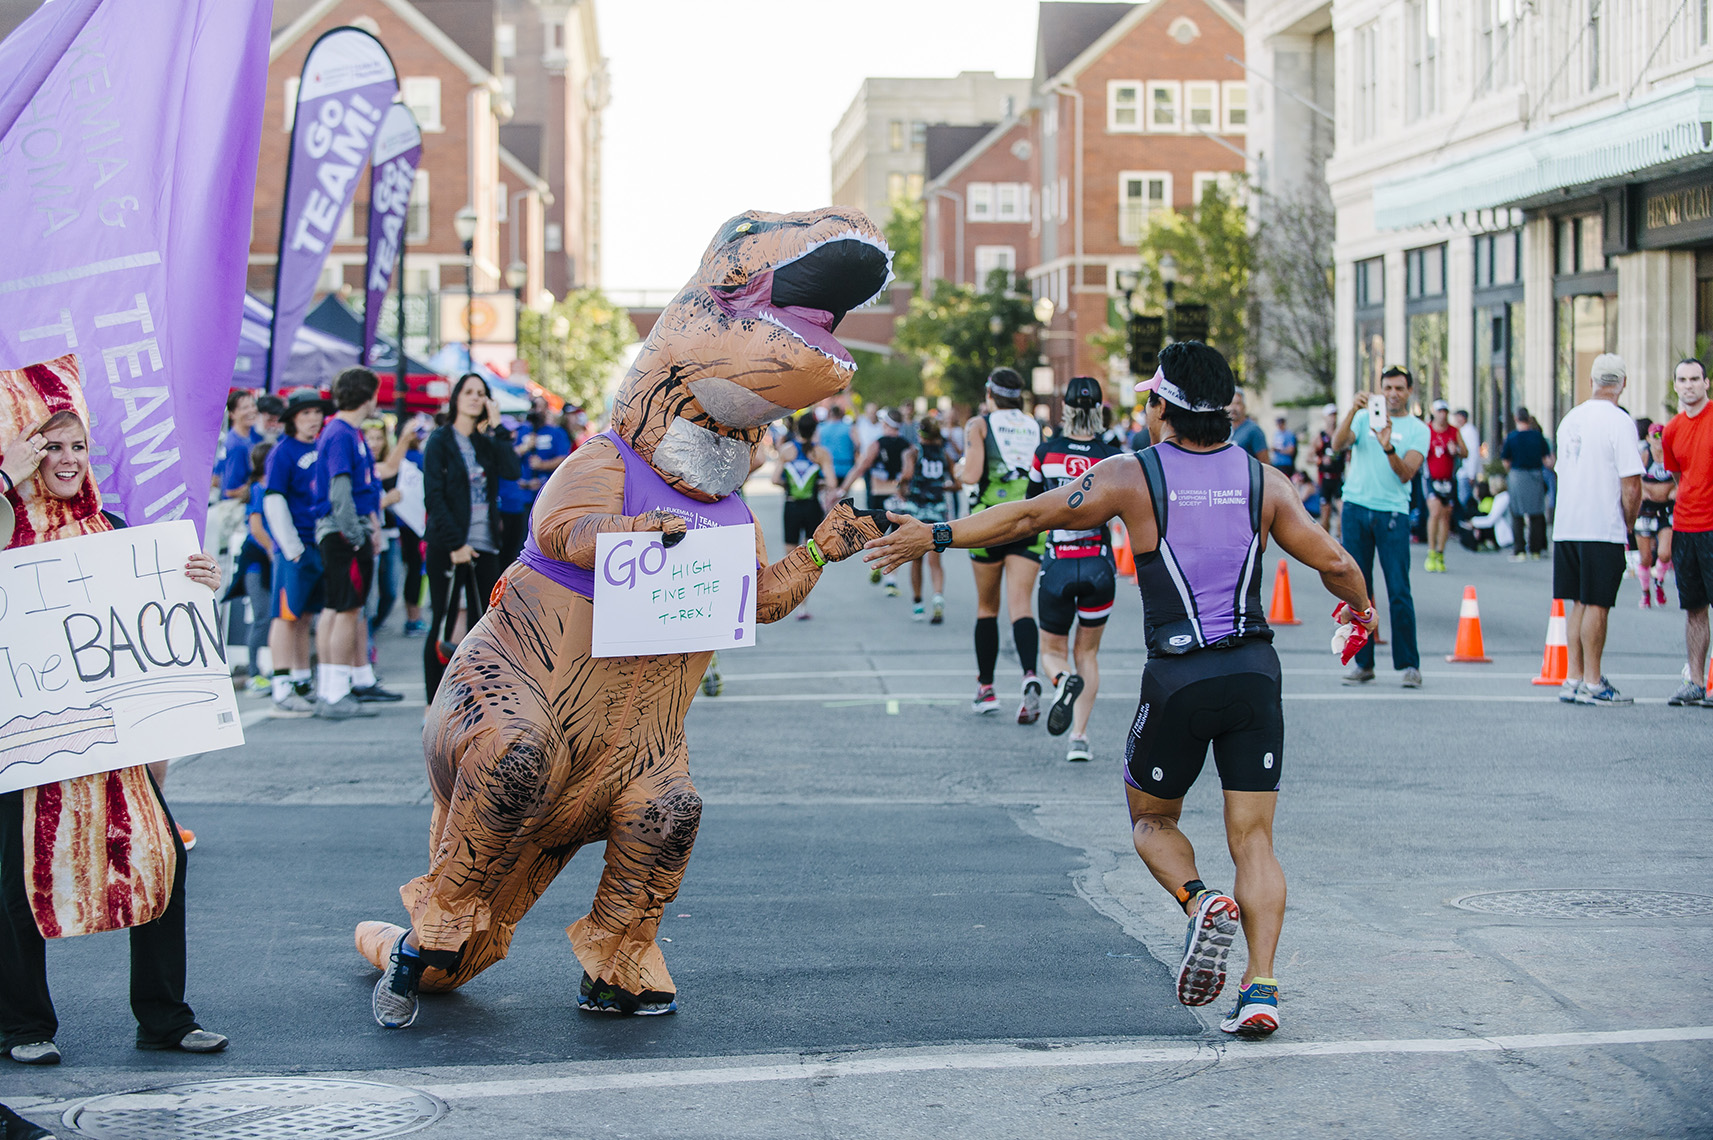 inflatable-trex-louisville-ironman-team-in-training-lls